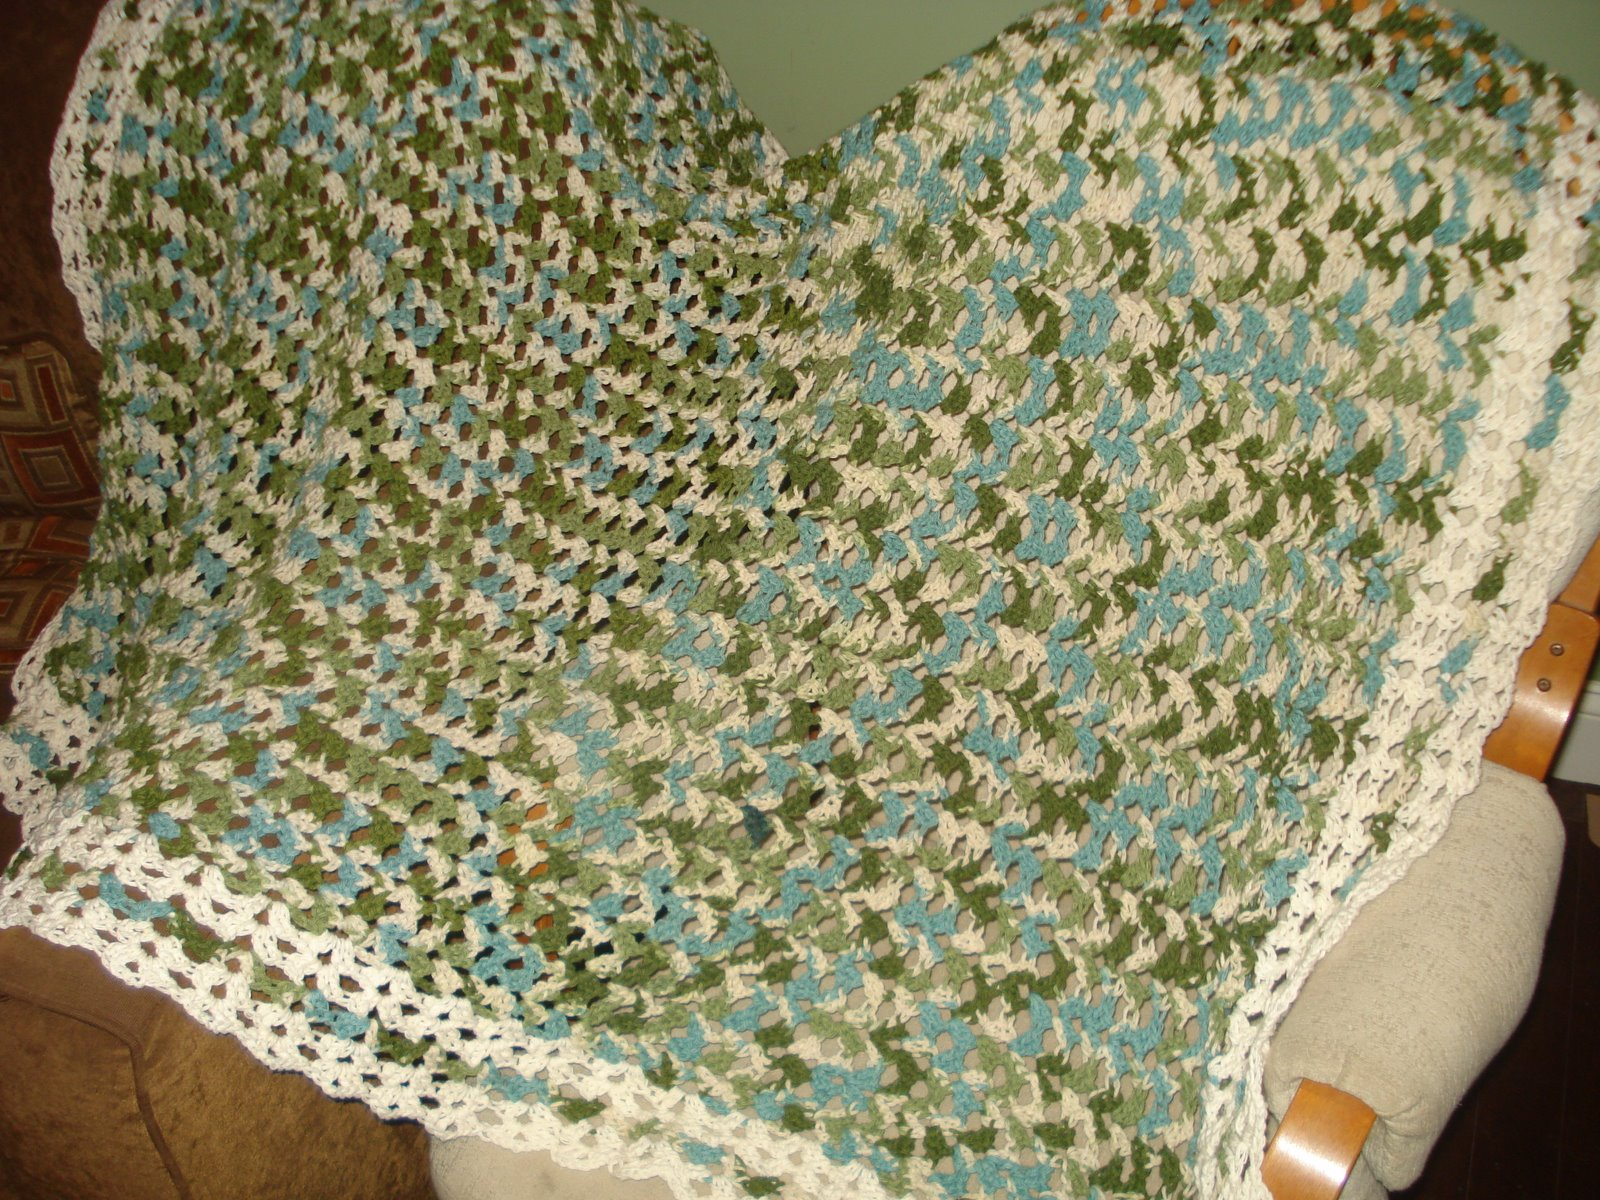 Crochet Patterns Multicolor Yarn : A Ginger Mess: Crocheted Blanket with Variegated Yarn